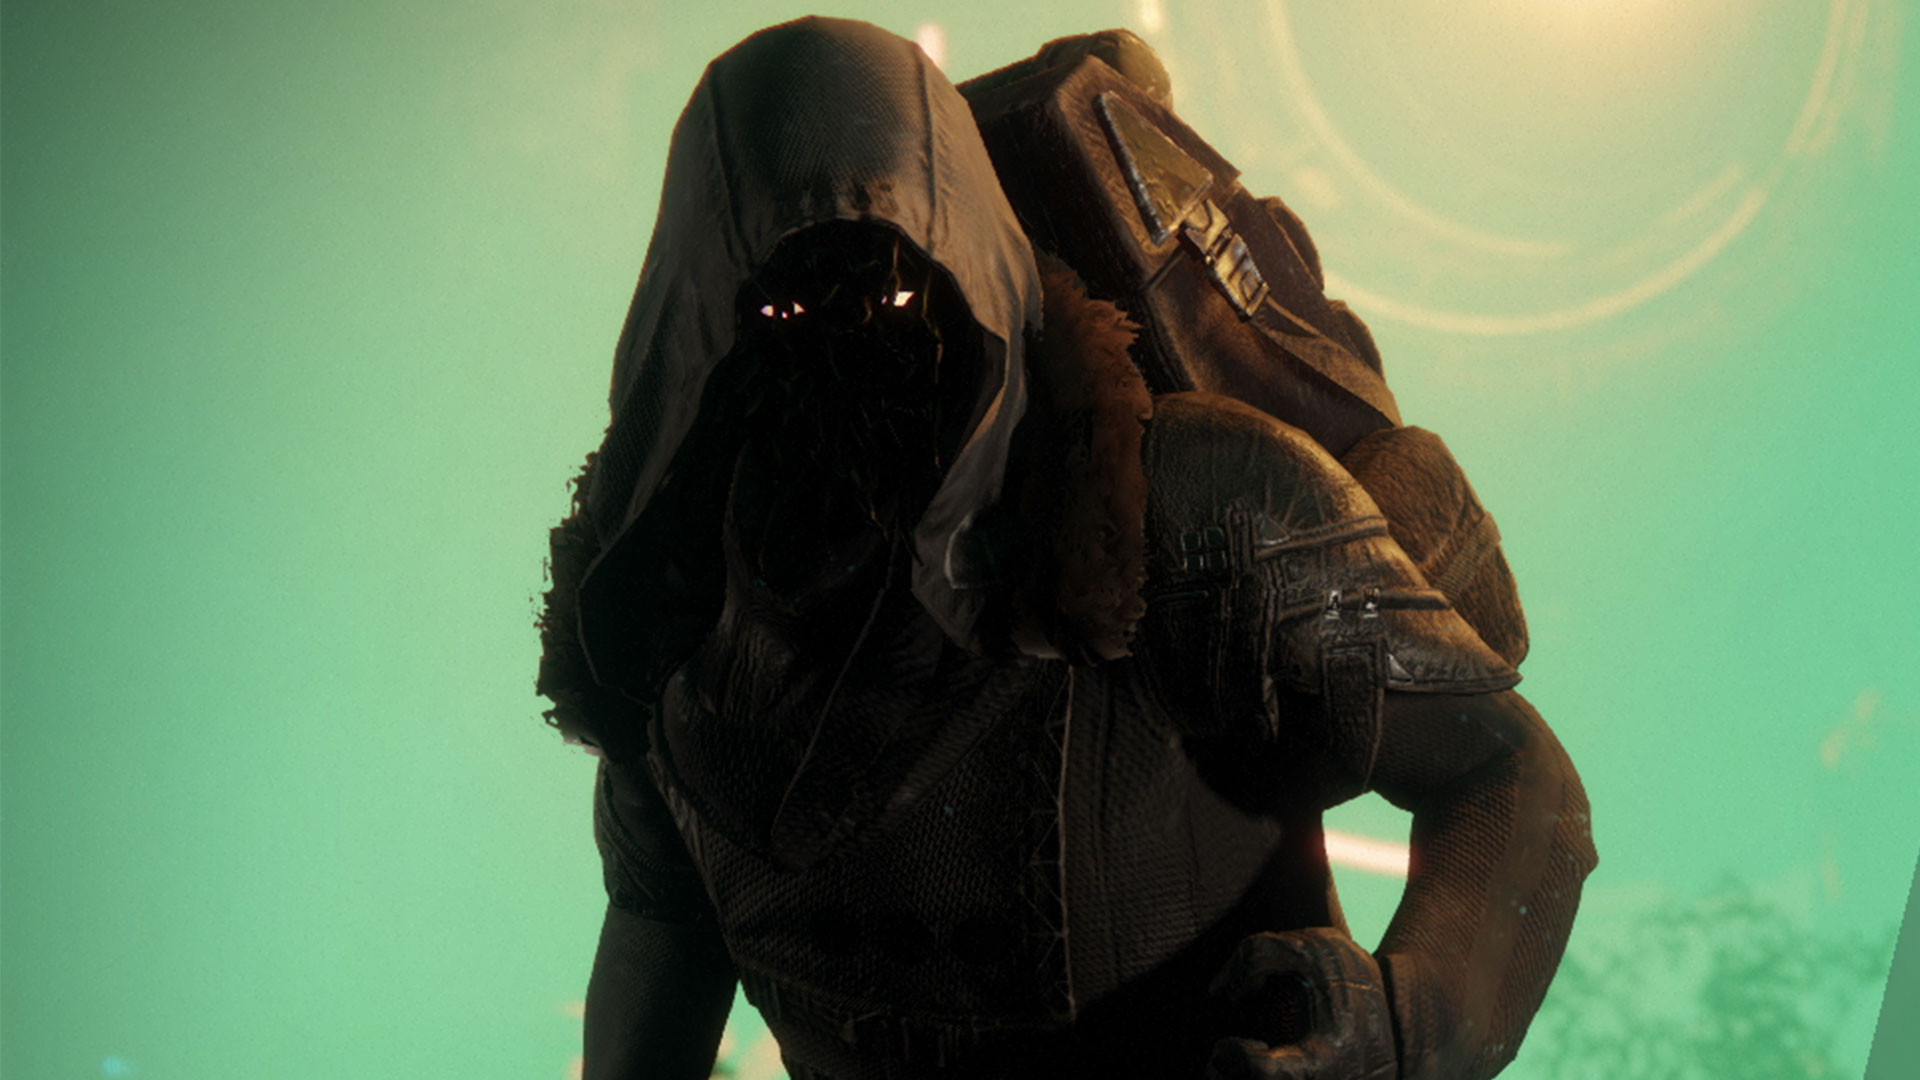 Destiny 2 Xur location and items, July 5 - July 8